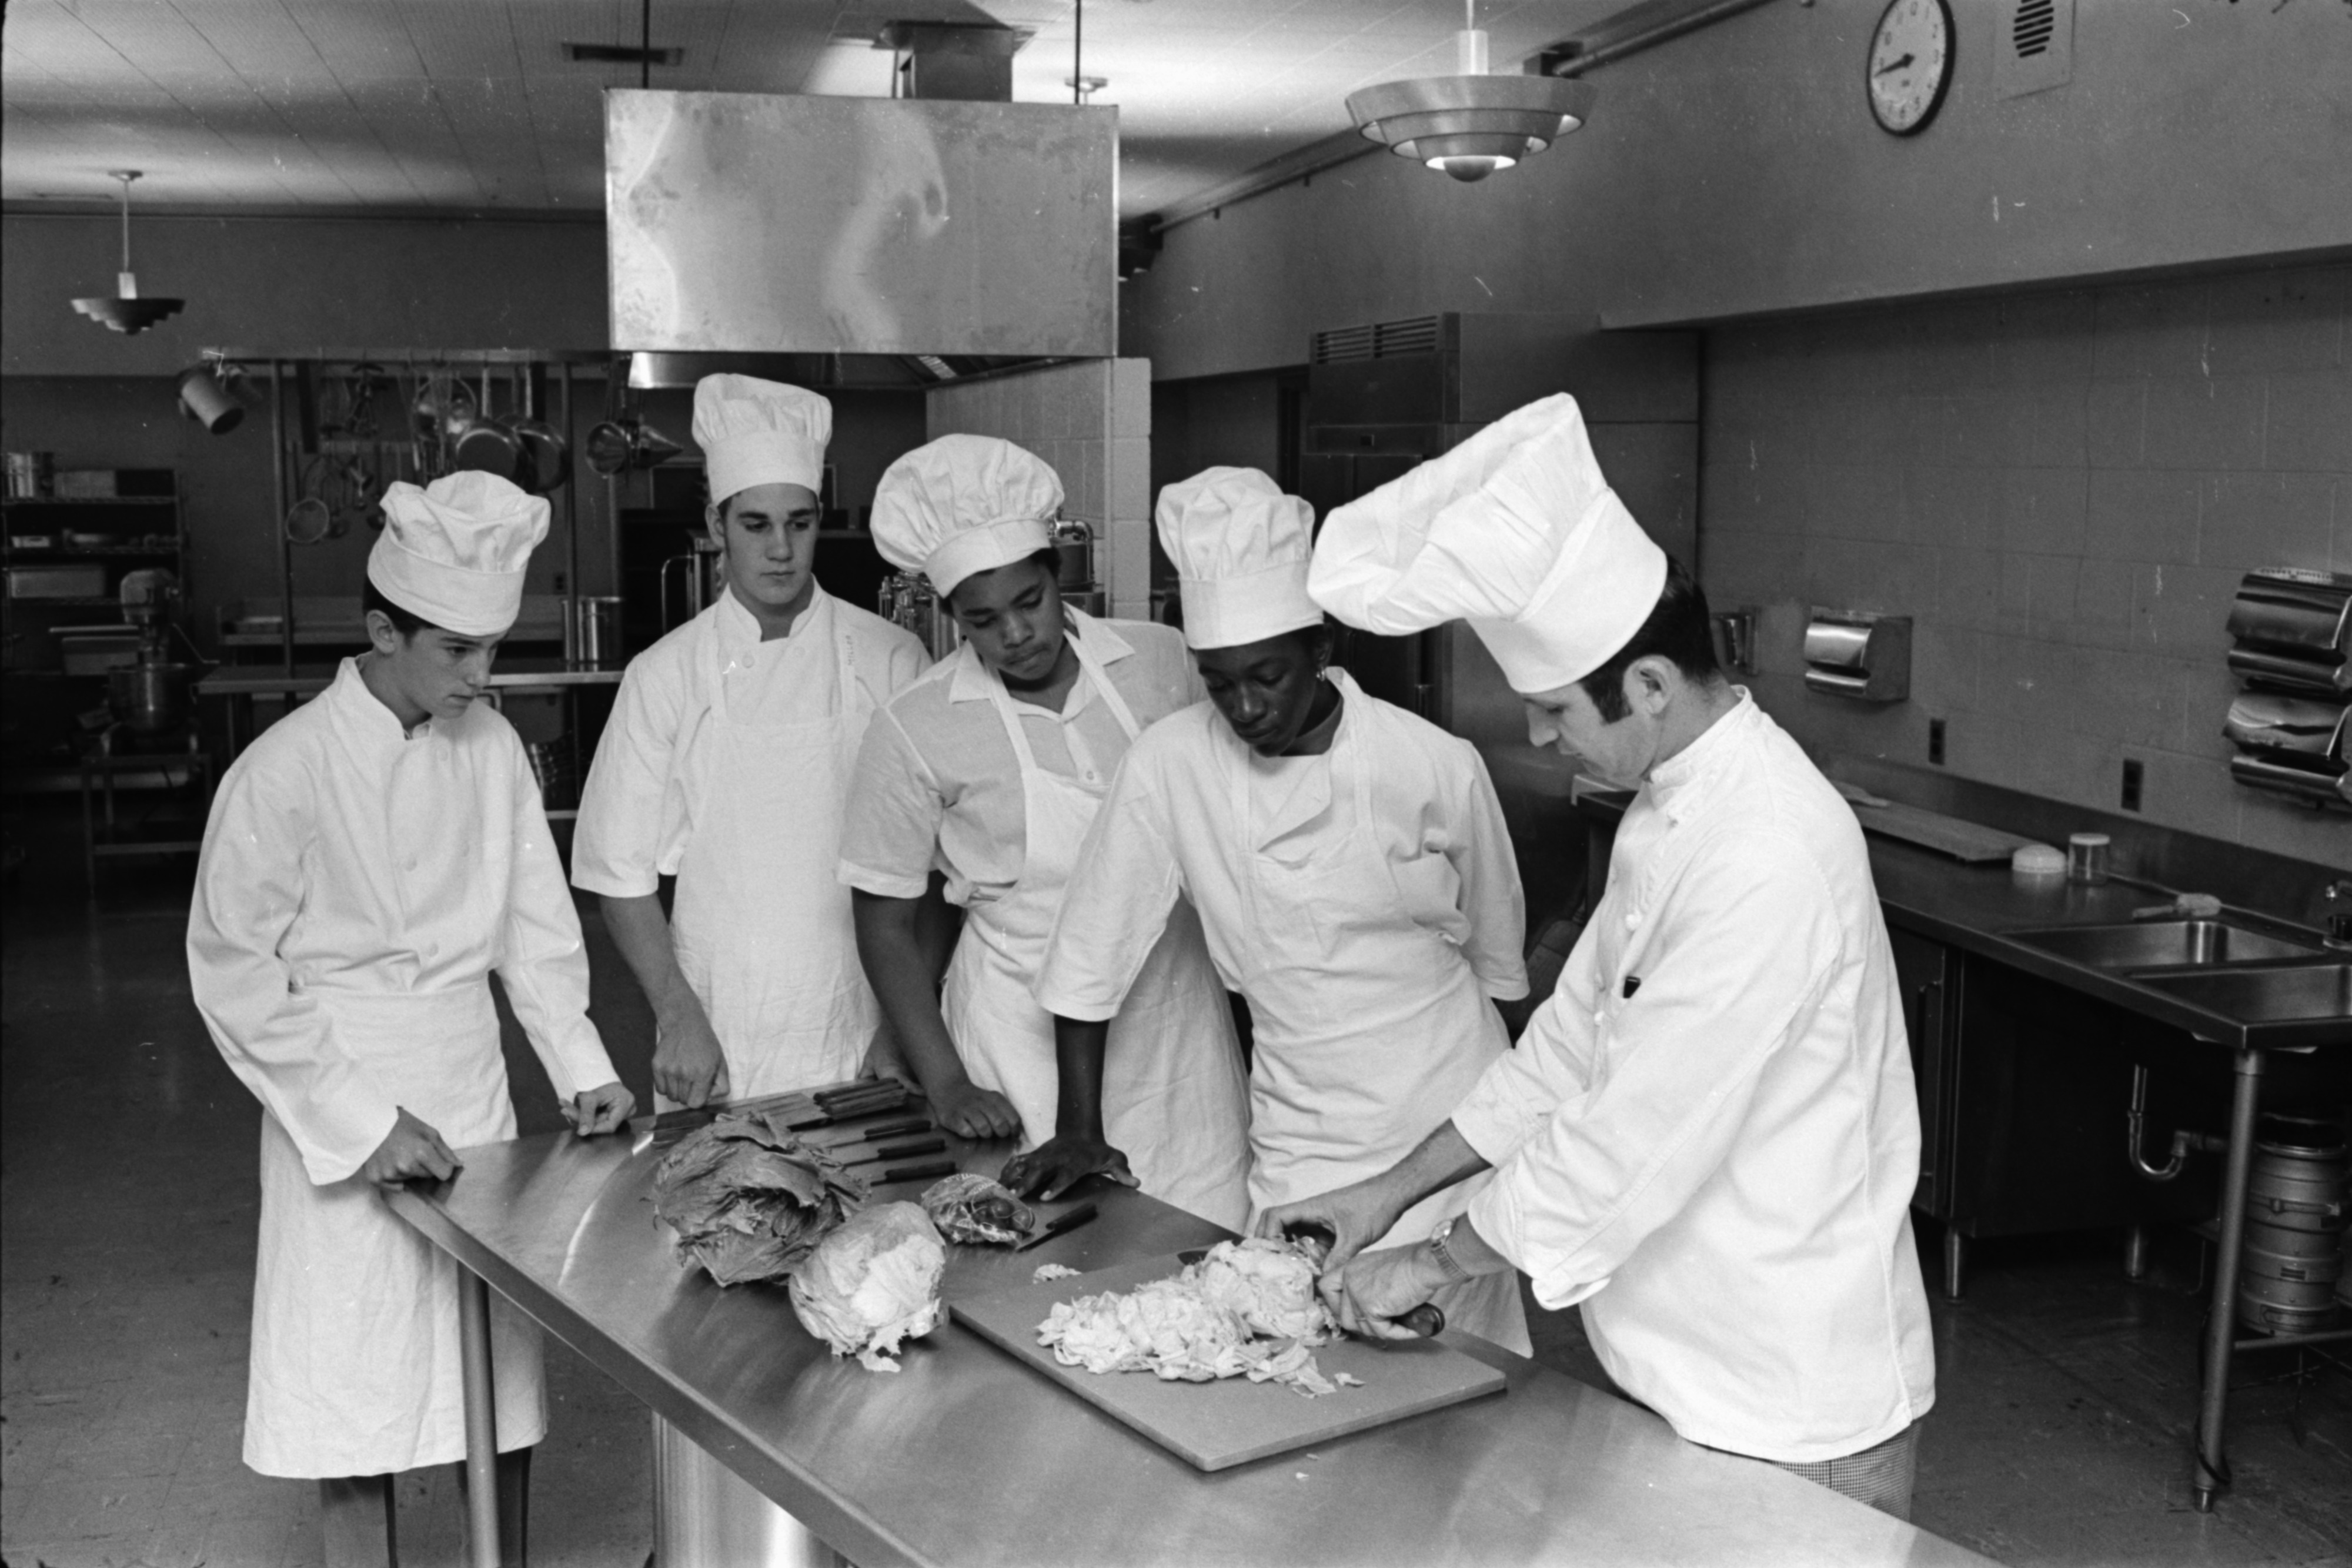 Students Attend New Food Classes at Pioneer High, September 1969 image